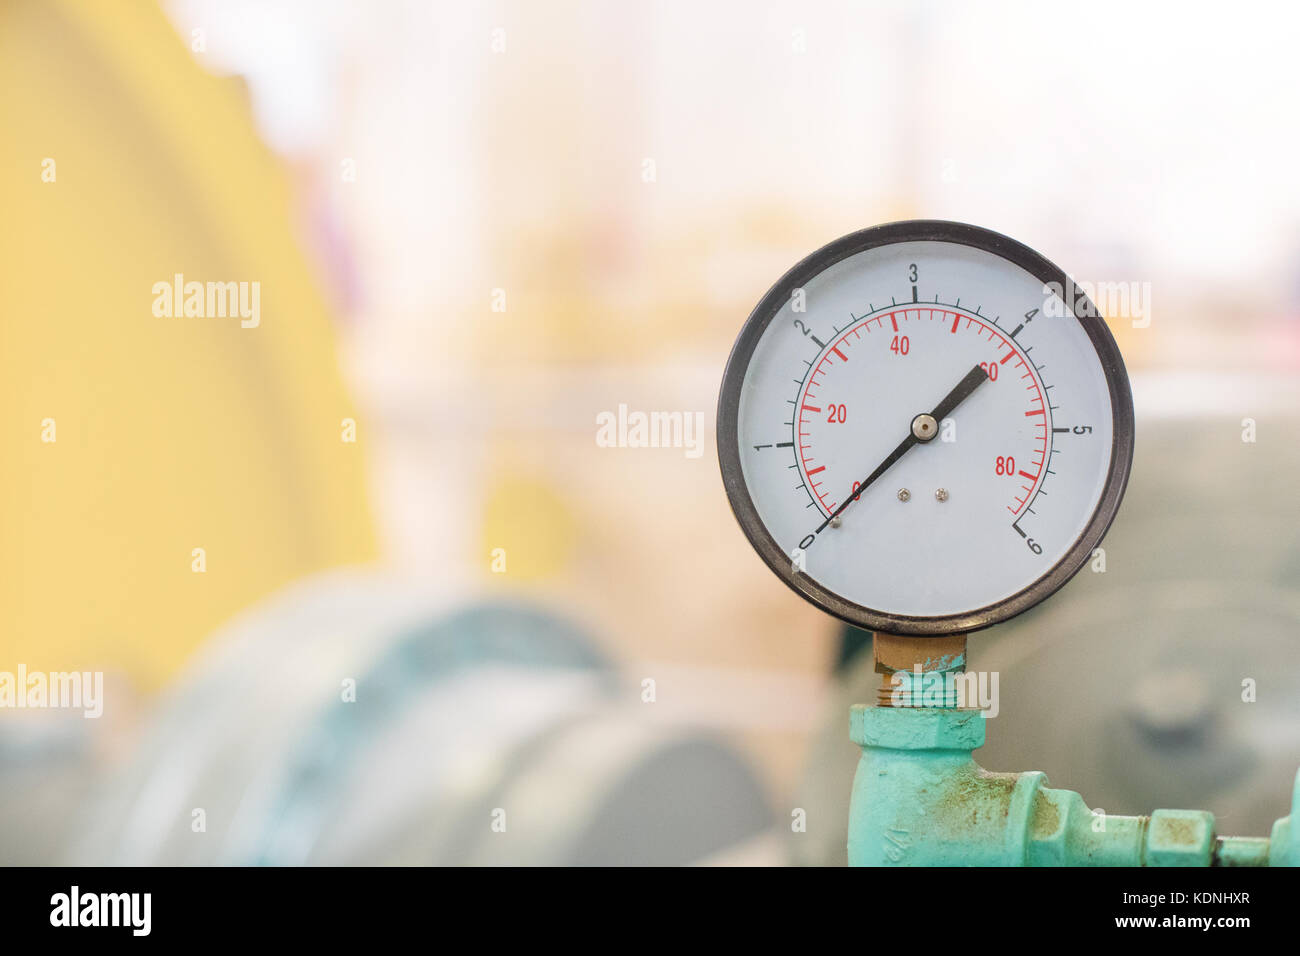 Manometer Stock Photos & Manometer Stock Images - Alamy